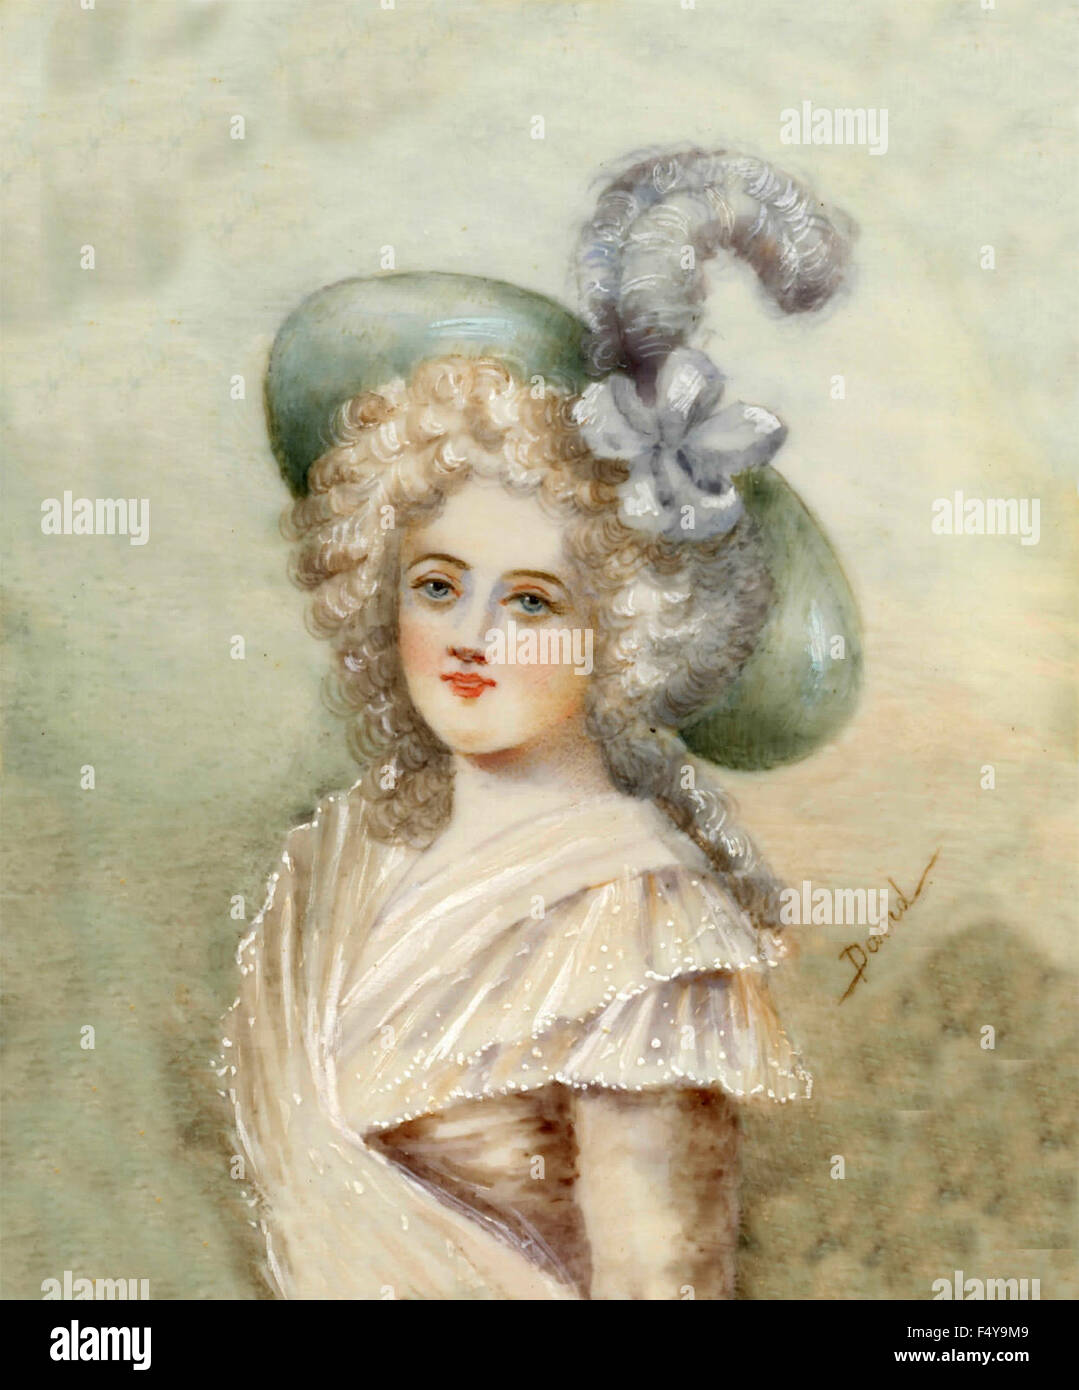 Hats and dresses of the French fashion of 1700 - Stock Image